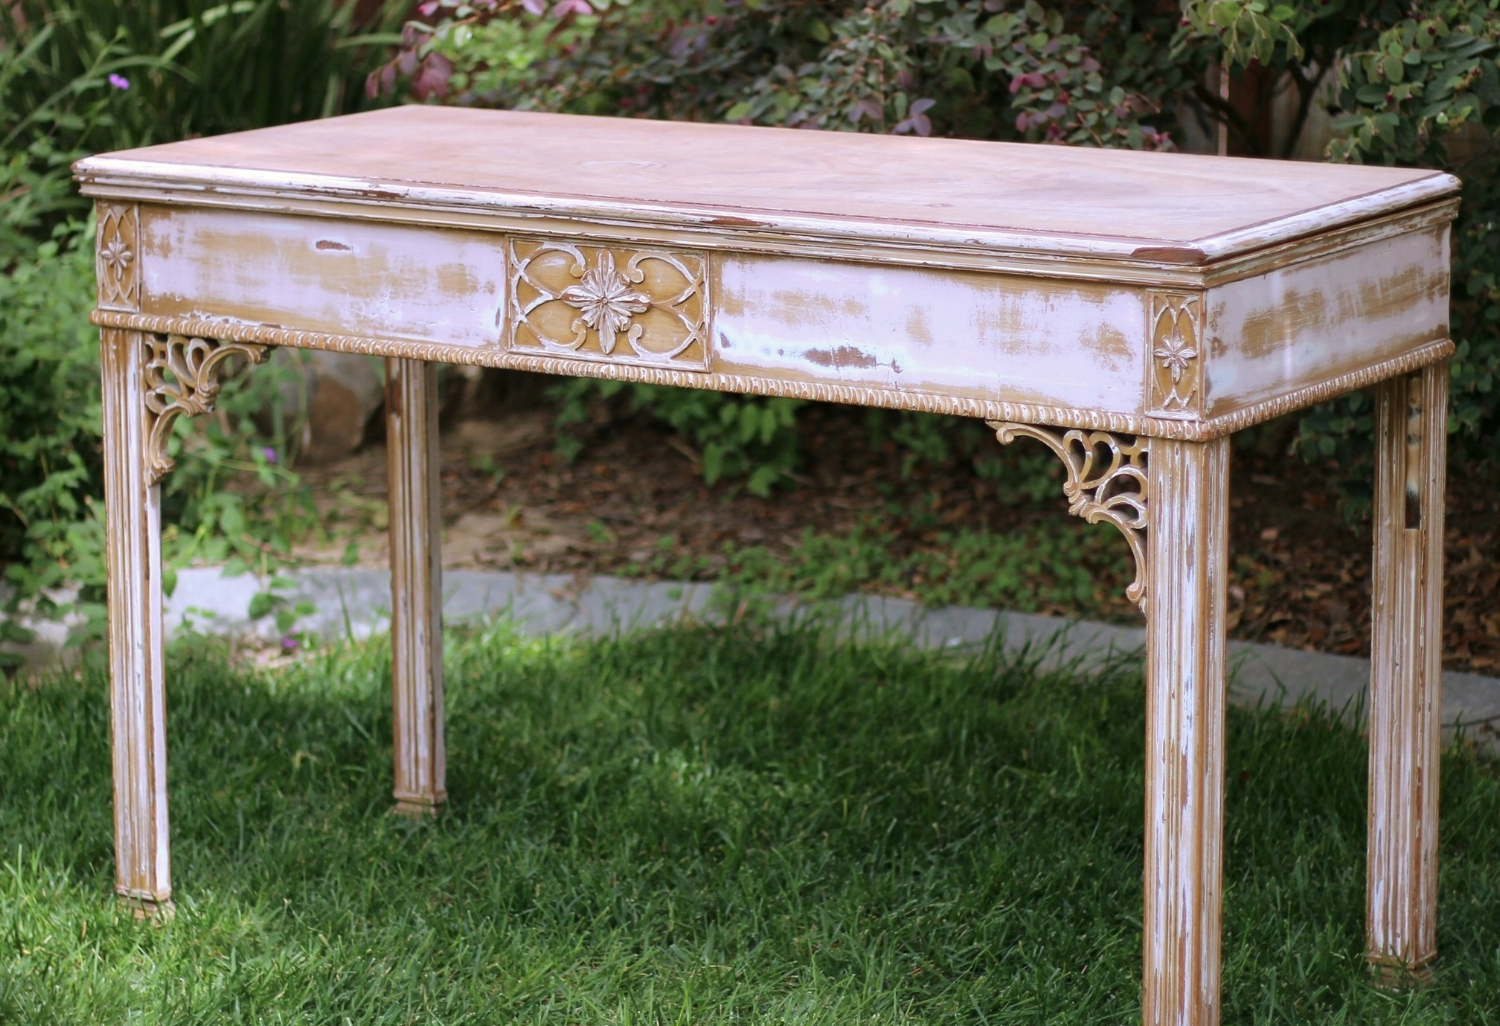 Medallion Shabby Chic Console Table - $50    MORE DETAILS & PICS...